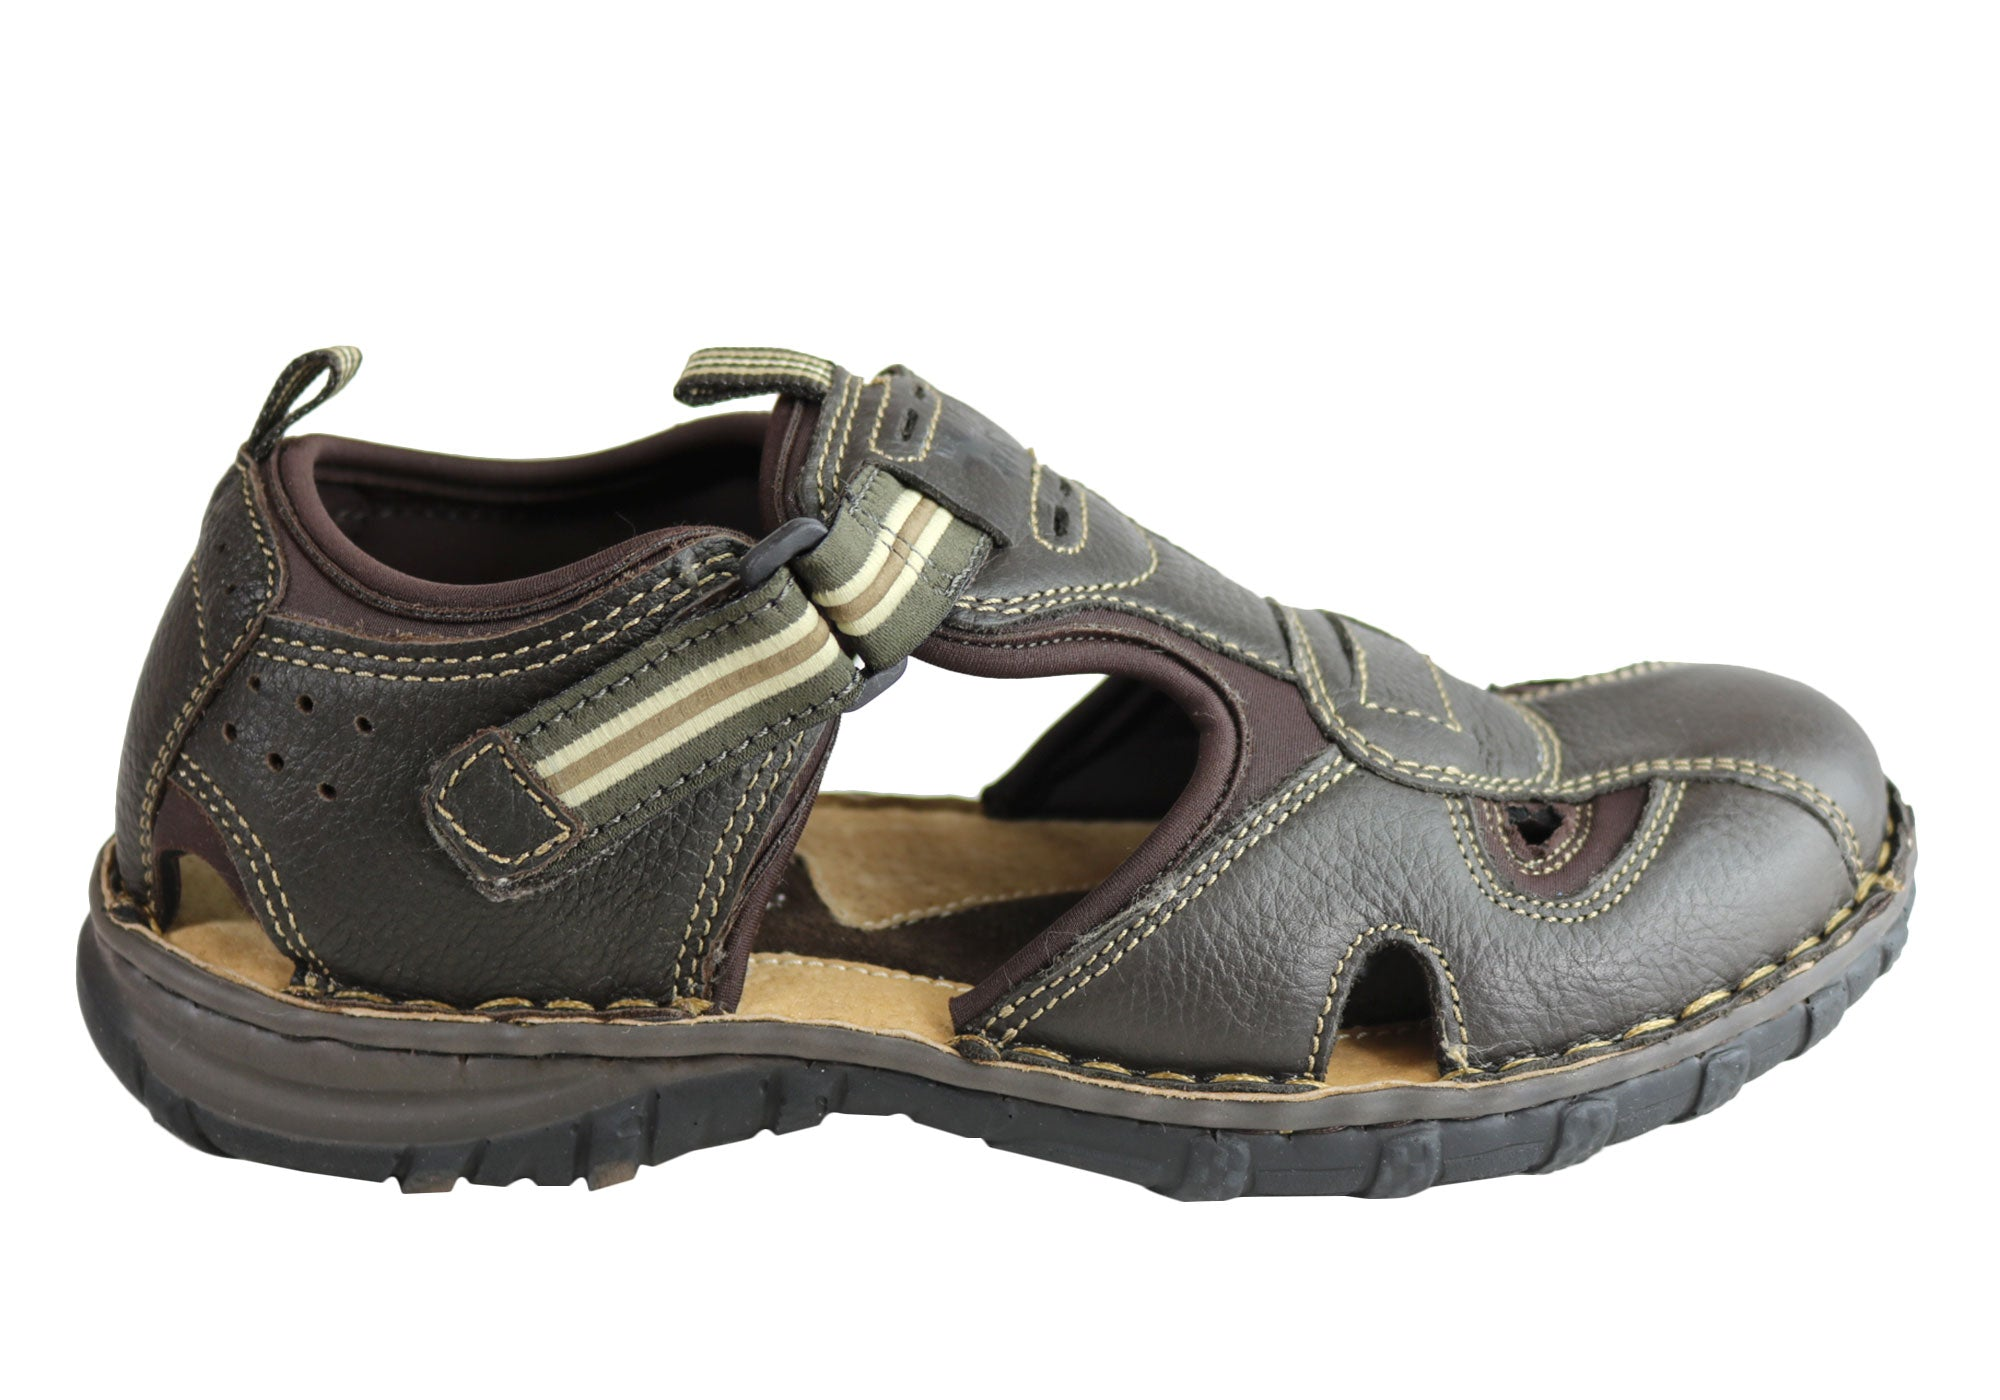 234f391e1090 Wild Rhino Pitt Mens Comfortable Leather Closed Toe Sandals Shoes ...